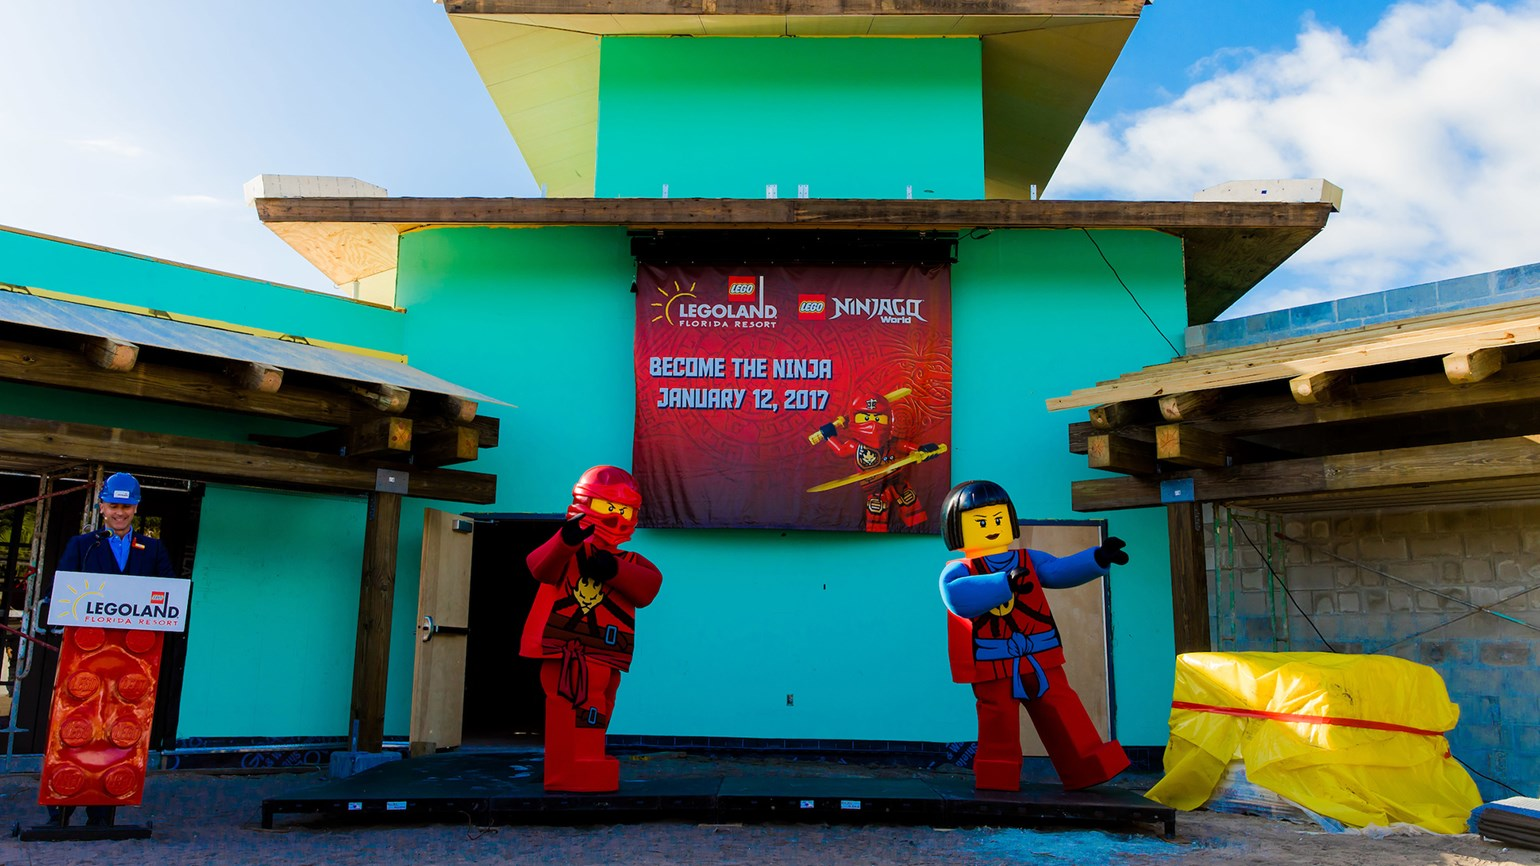 Ninjago World coming to Legoland Fla.